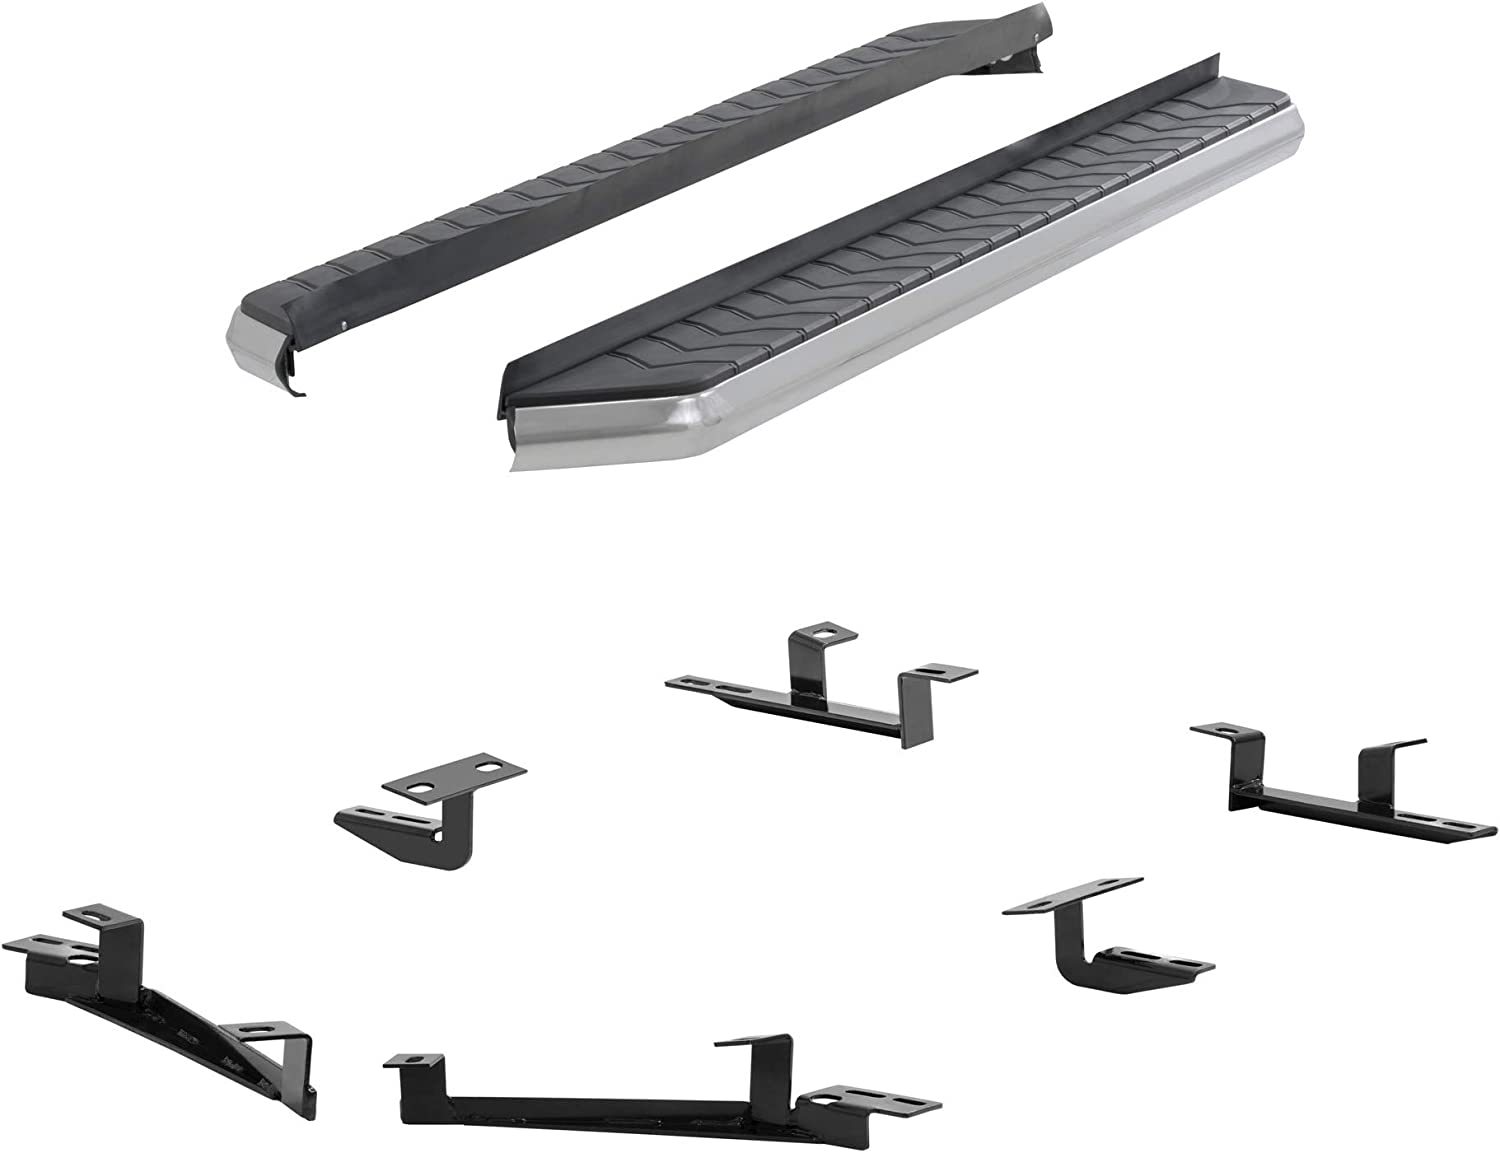 ARIES 2051014 AeroTread 70-Inch Polished Stainless Steel SUV Running Boards Select Toyota Highlander